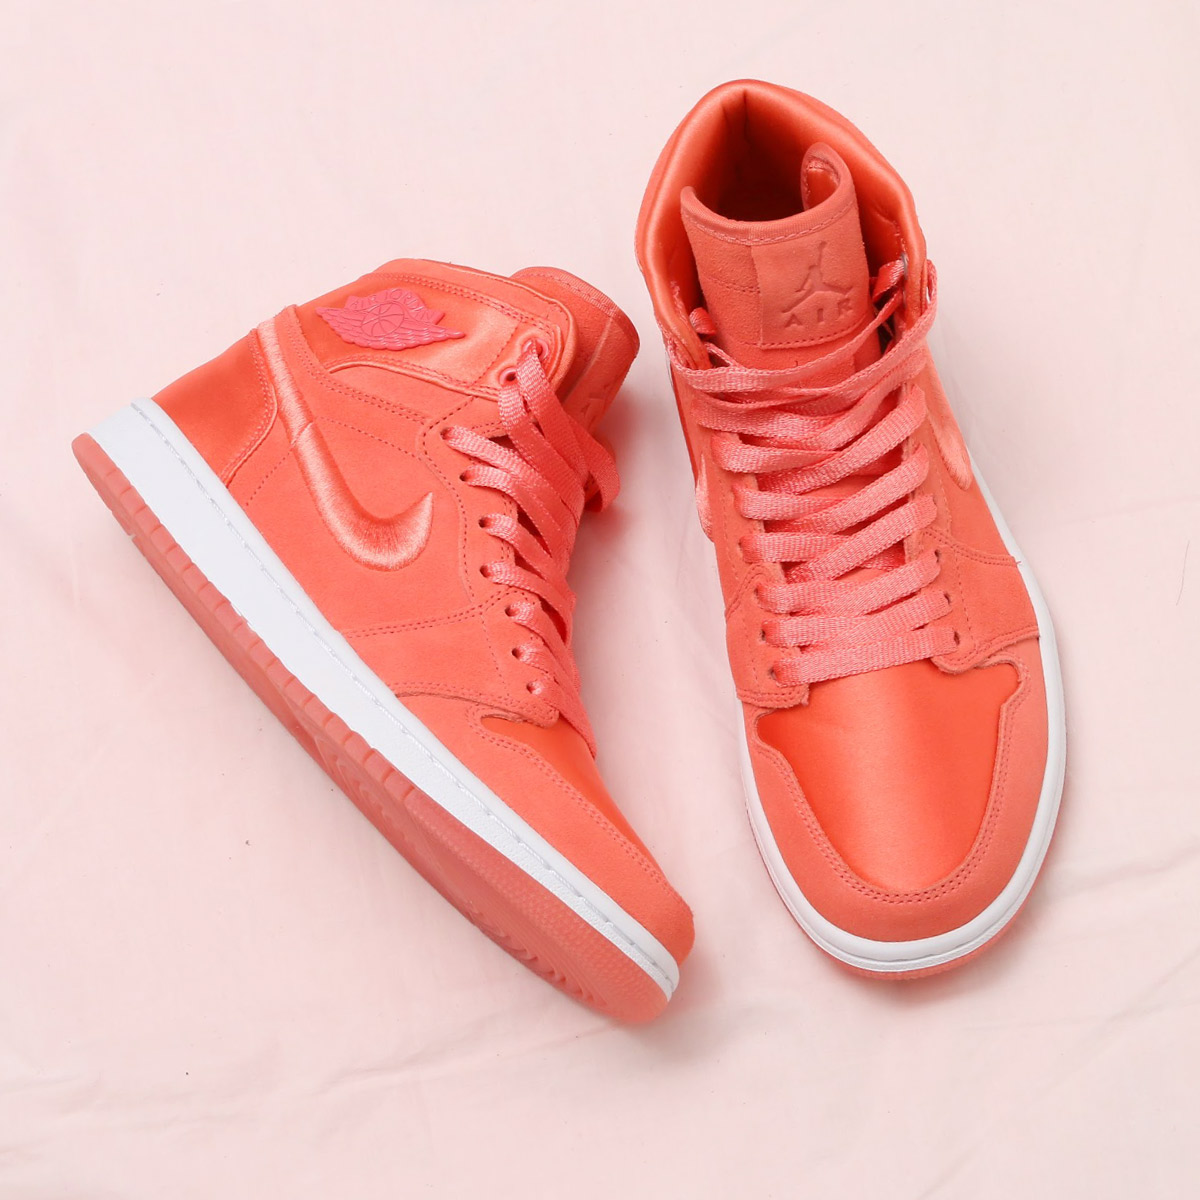 NIKE WMNS AIR JORDAN 1 RET HIGH SOH(ナイキ ウィメンズ エア ジョーダン 1 レトロ ハイ SOH)(SUNBLUSH/WHITE-METALLIC GOLD)18SP-S